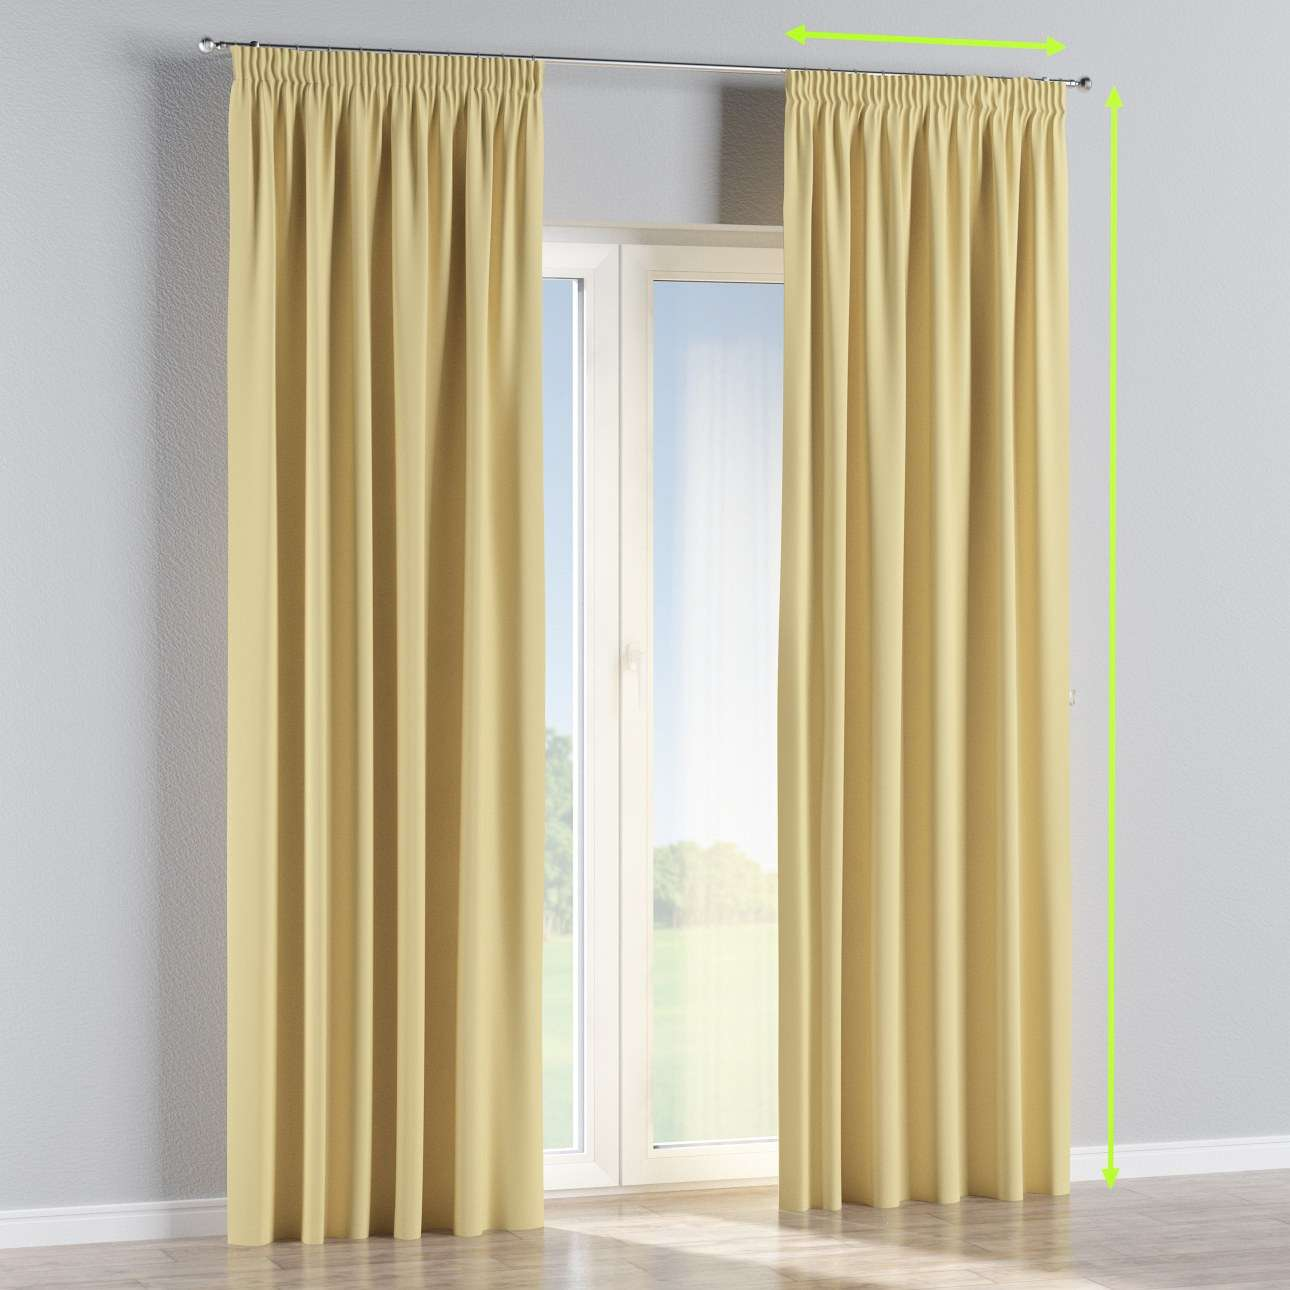 Pencil pleat curtain in collection Blackout, fabric: 269-12